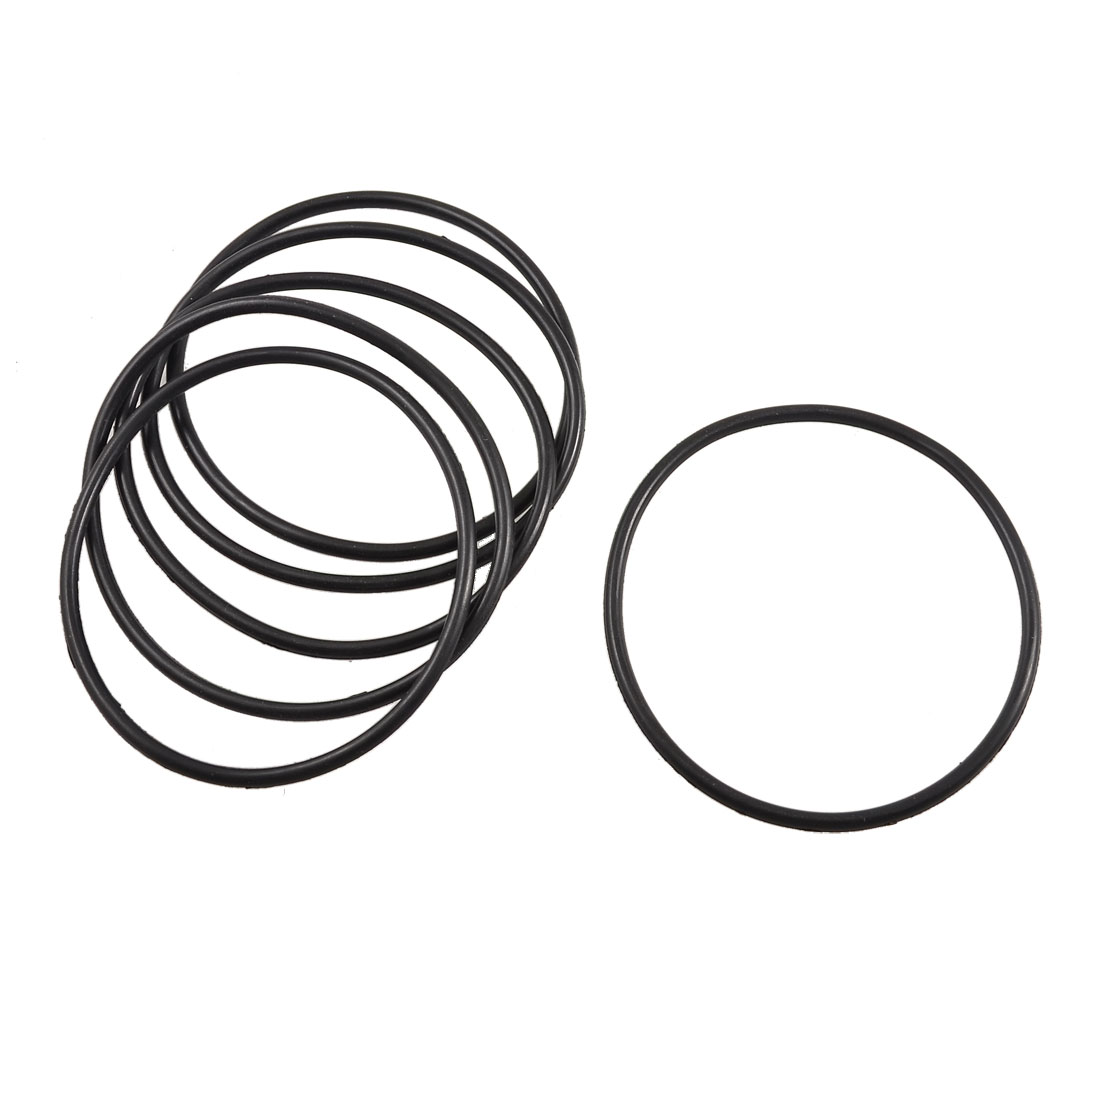 5 Pcs 85mm x 78mm x 3.5mm Mechanical Flexible Rubber O Ring Oil Seal Gaskets